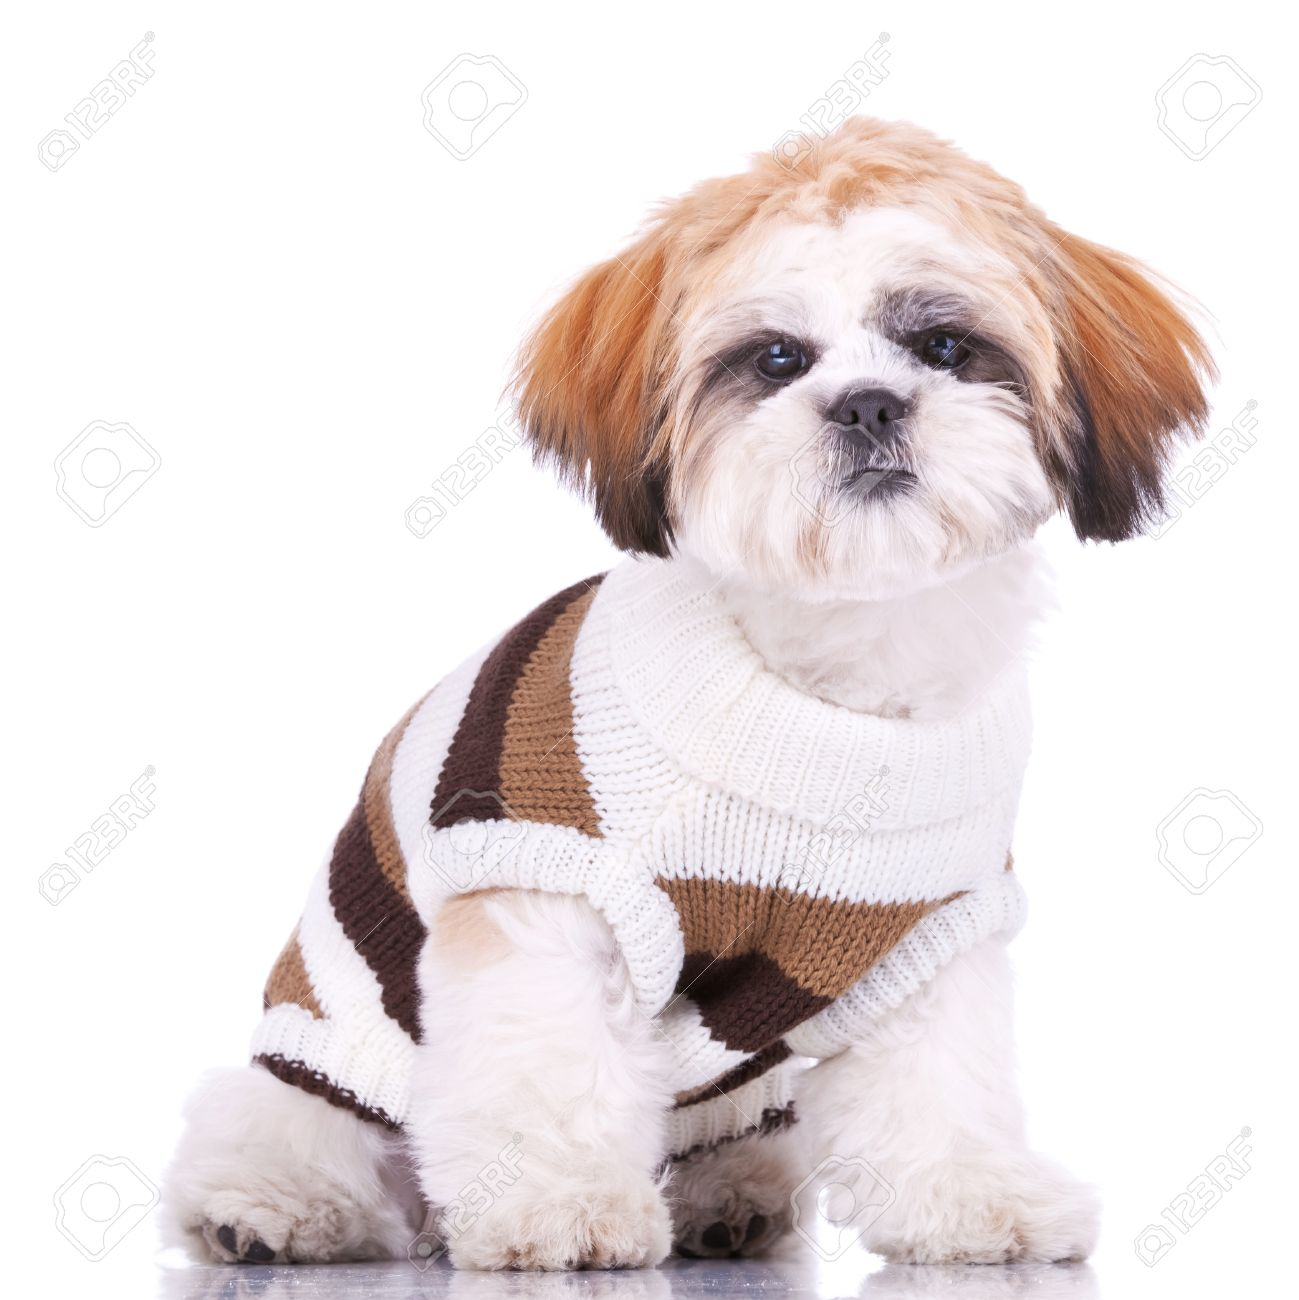 Curious Little Shih Tzu Puppy Wearing Clothes Sitting On White Stock Photo Picture And Royalty Free Image Image 11532460